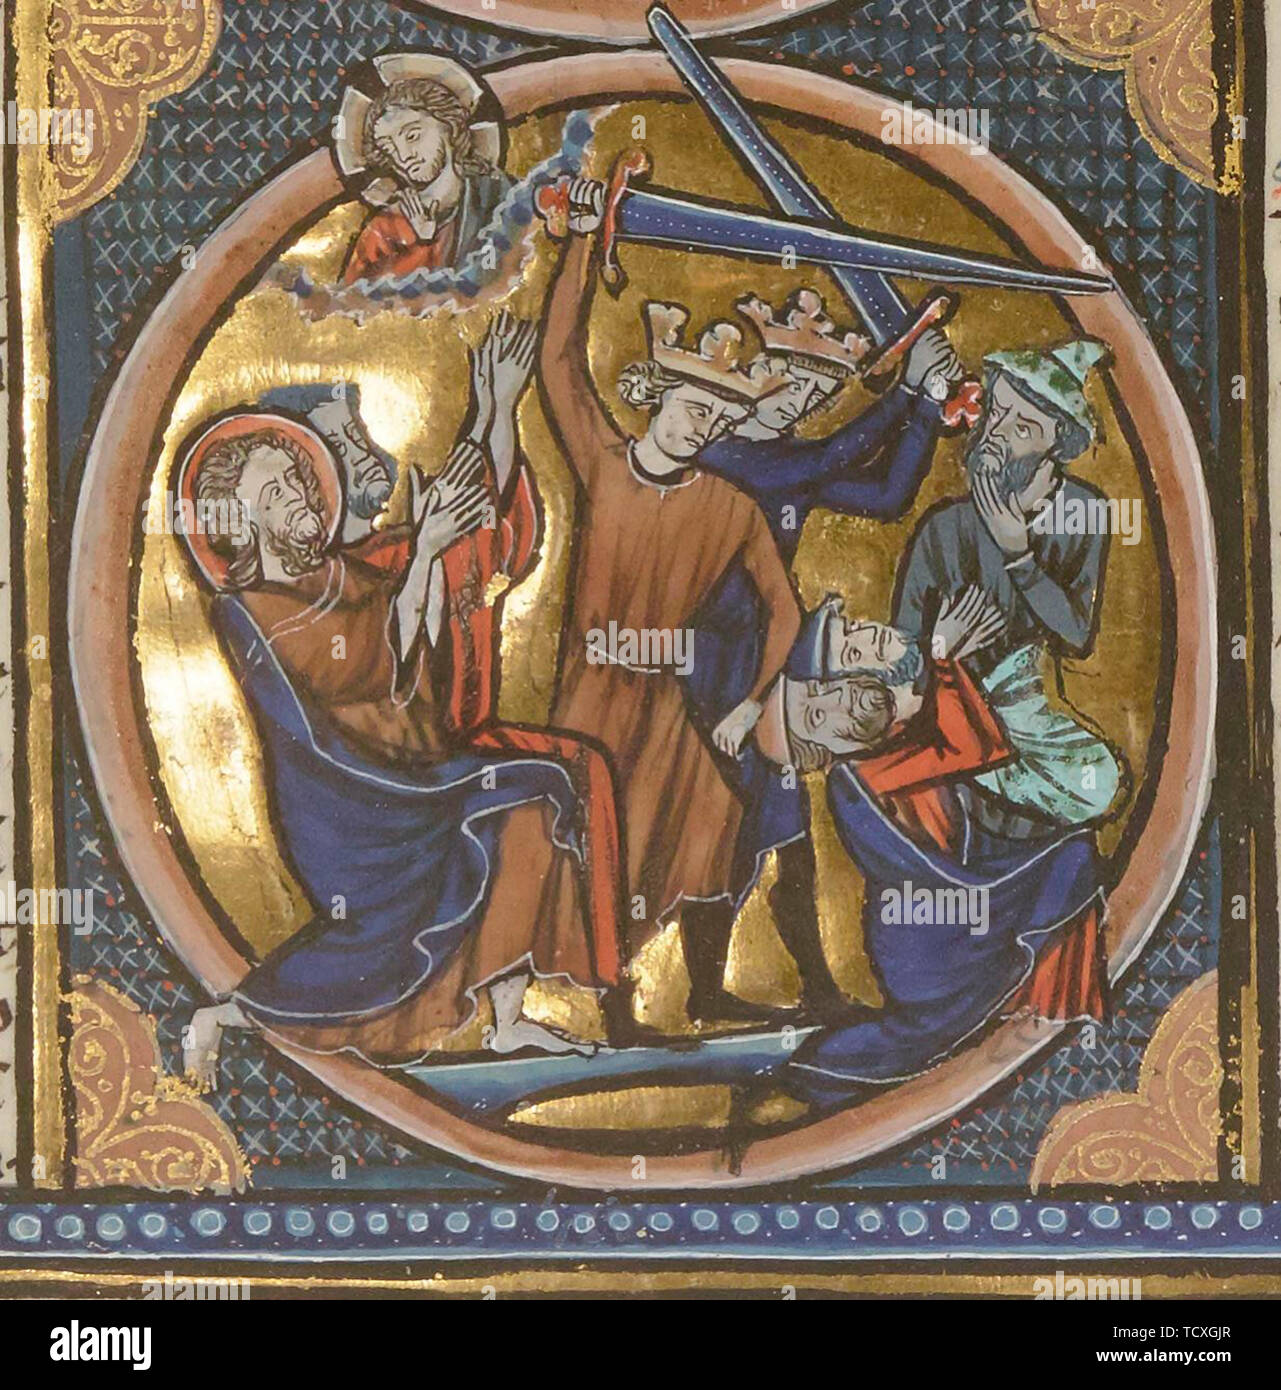 Execution of Jews. Miniature from Emblèmes bibliques, ca 1220-1230. Found in the Collection of Bibliothèque Nationale de France. - Stock Image